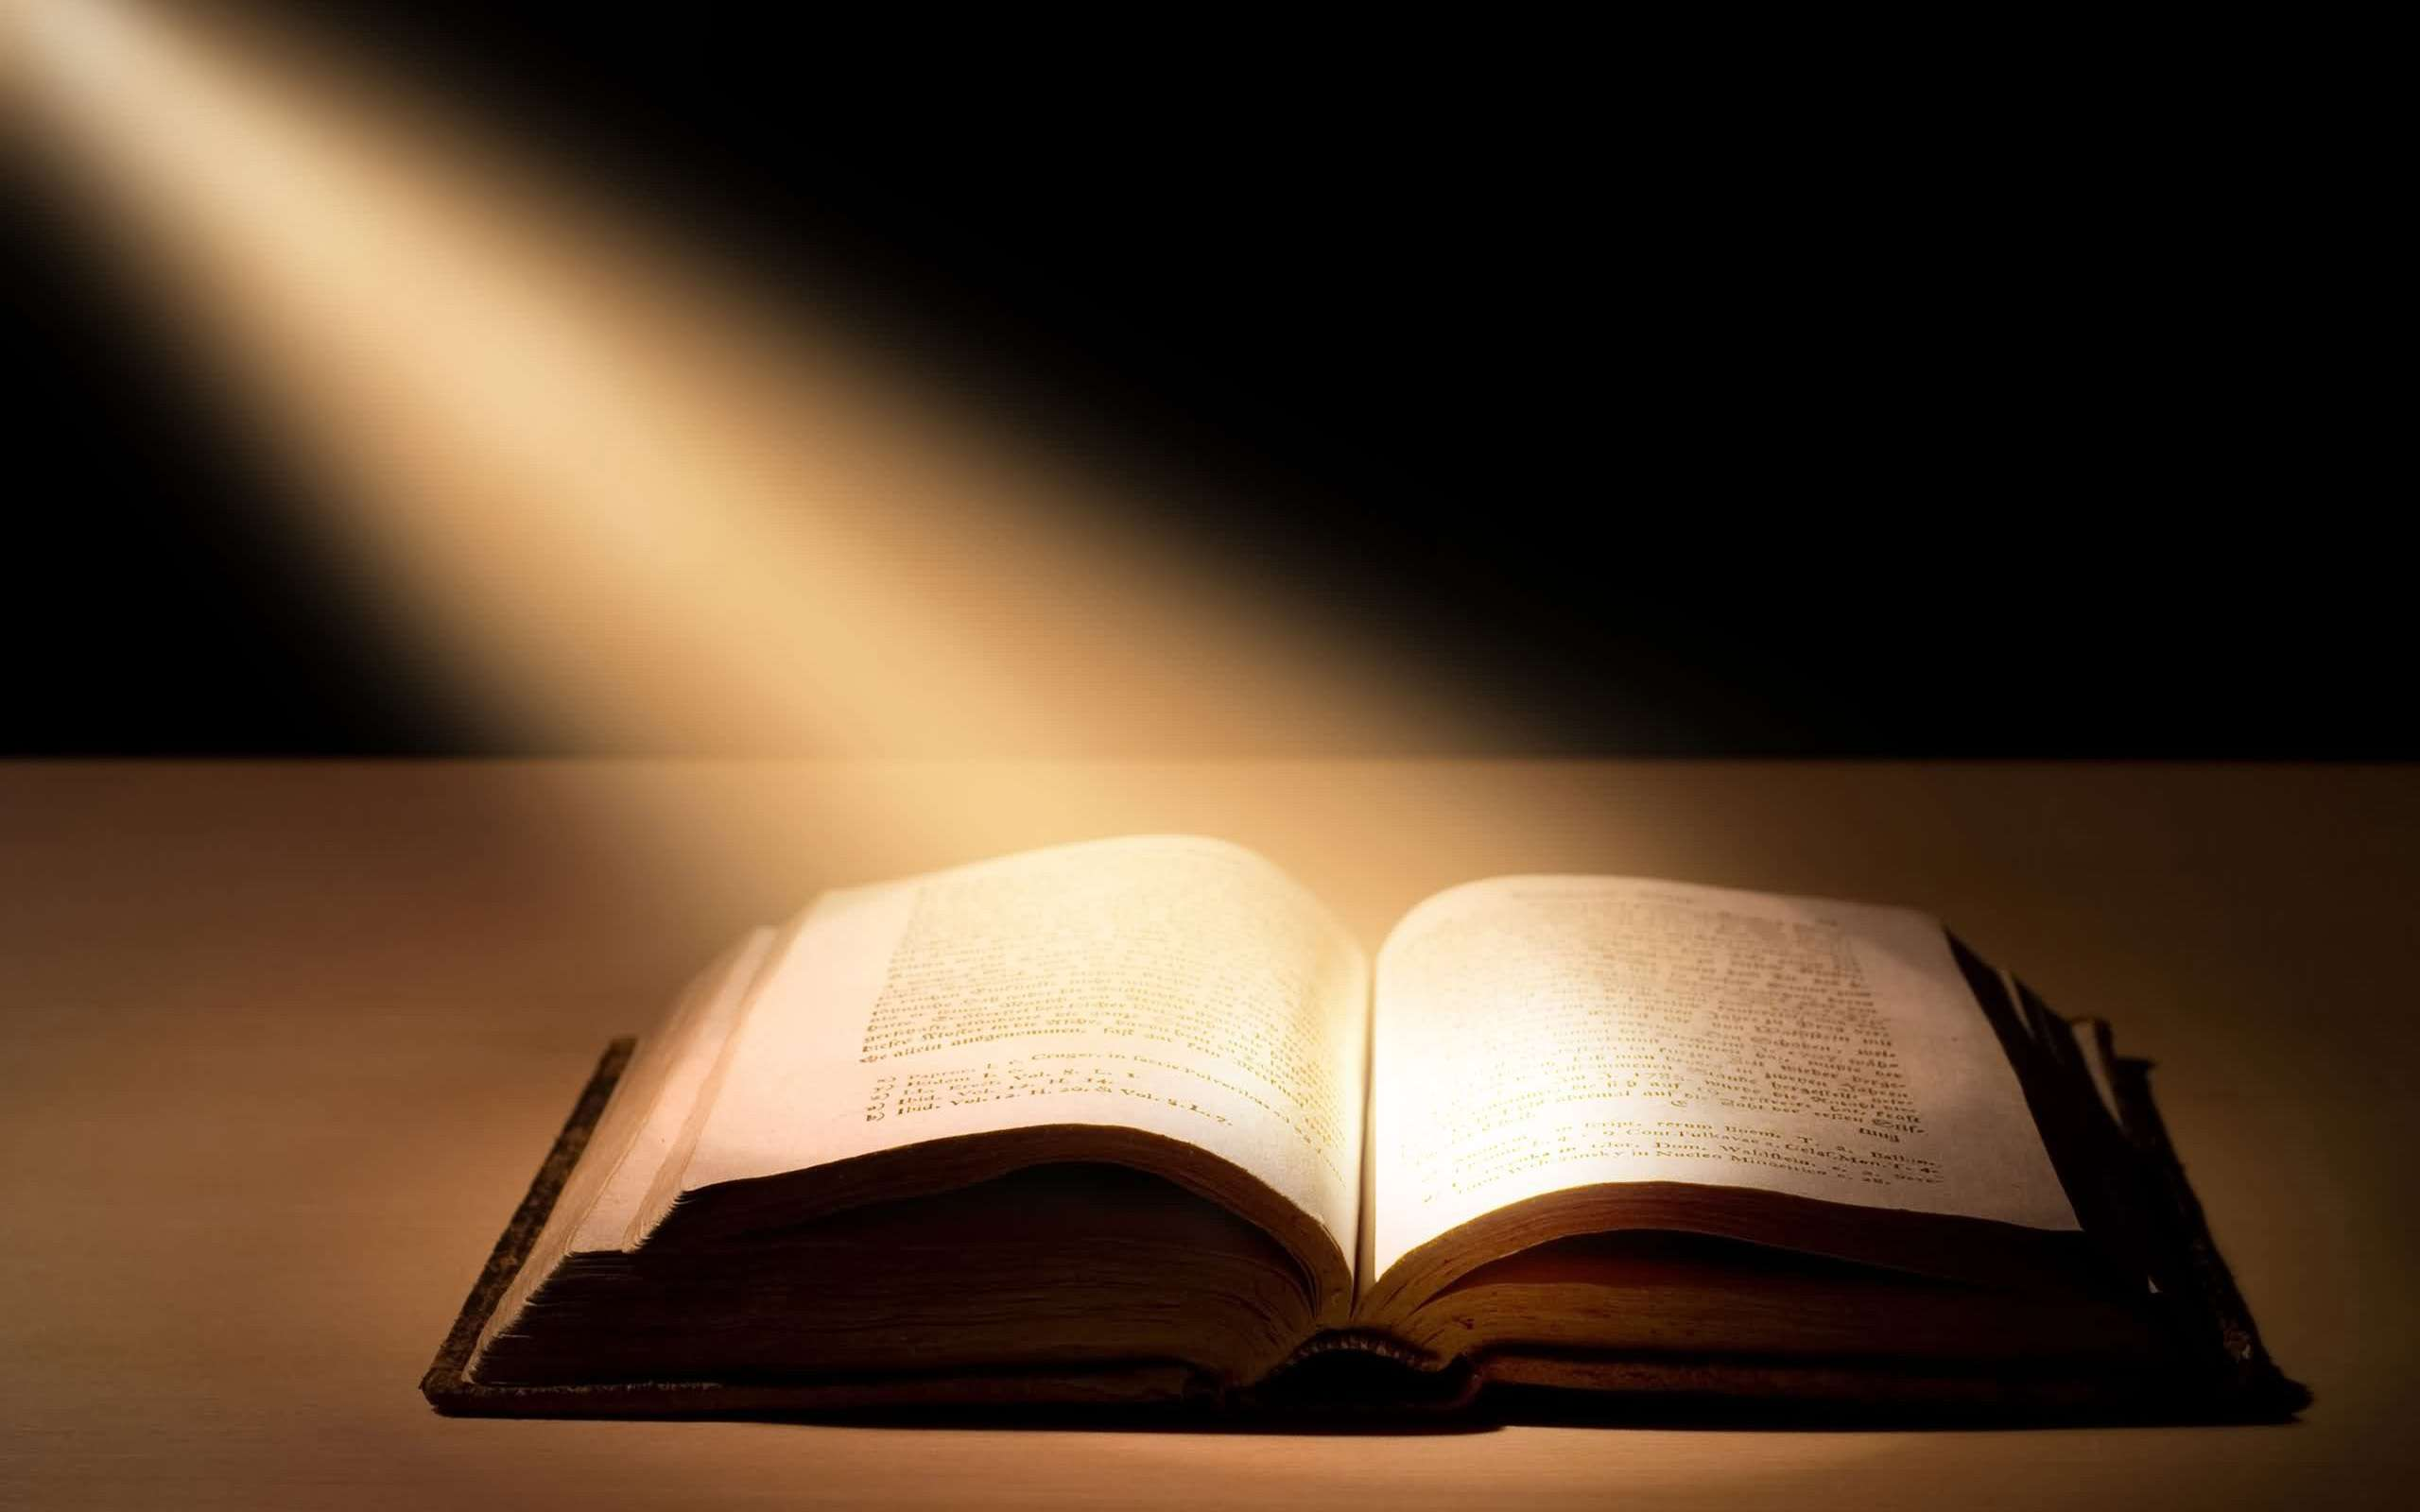 Finding Inspiring Bible Picture designs and Banners